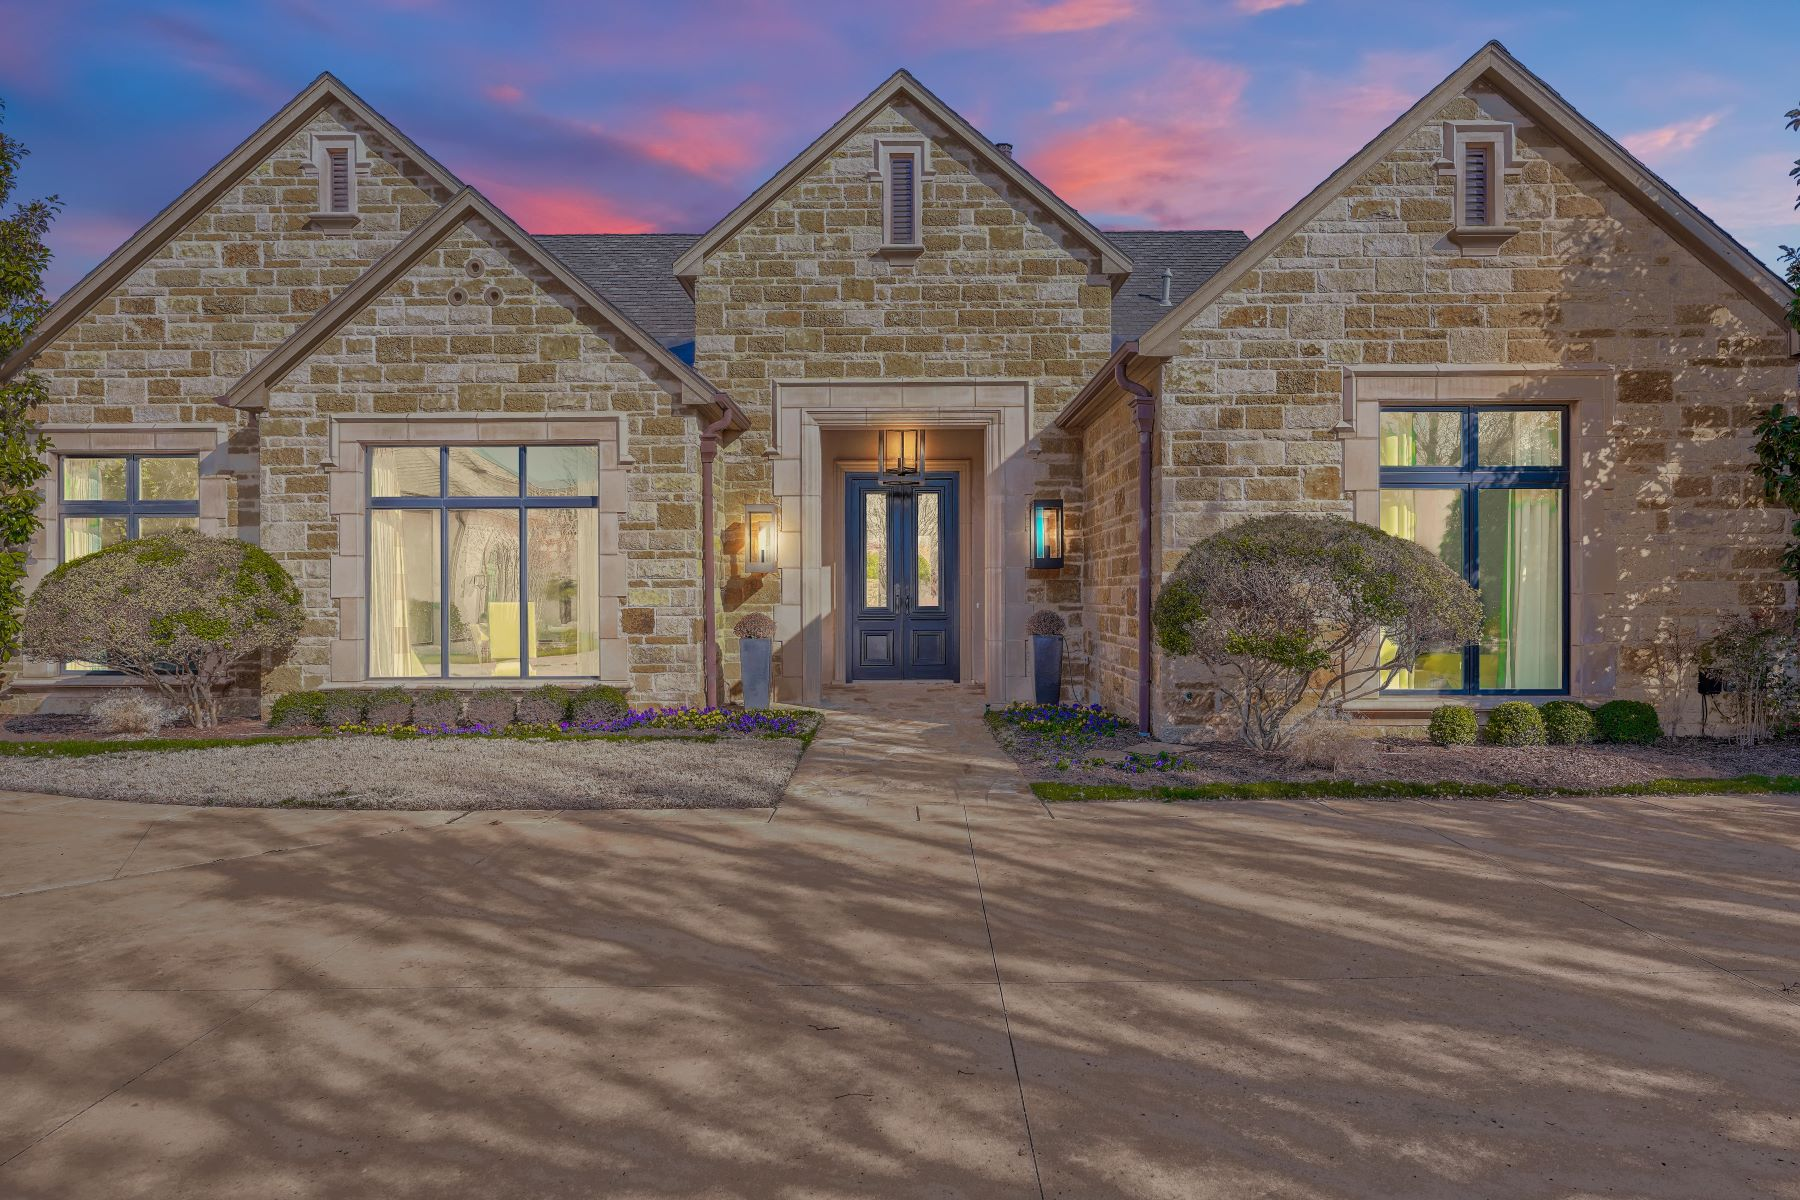 Single Family Homes for Sale at Grand Living in Gaillardia 15021 Laurin Lane Oklahoma City, Oklahoma 73142 United States